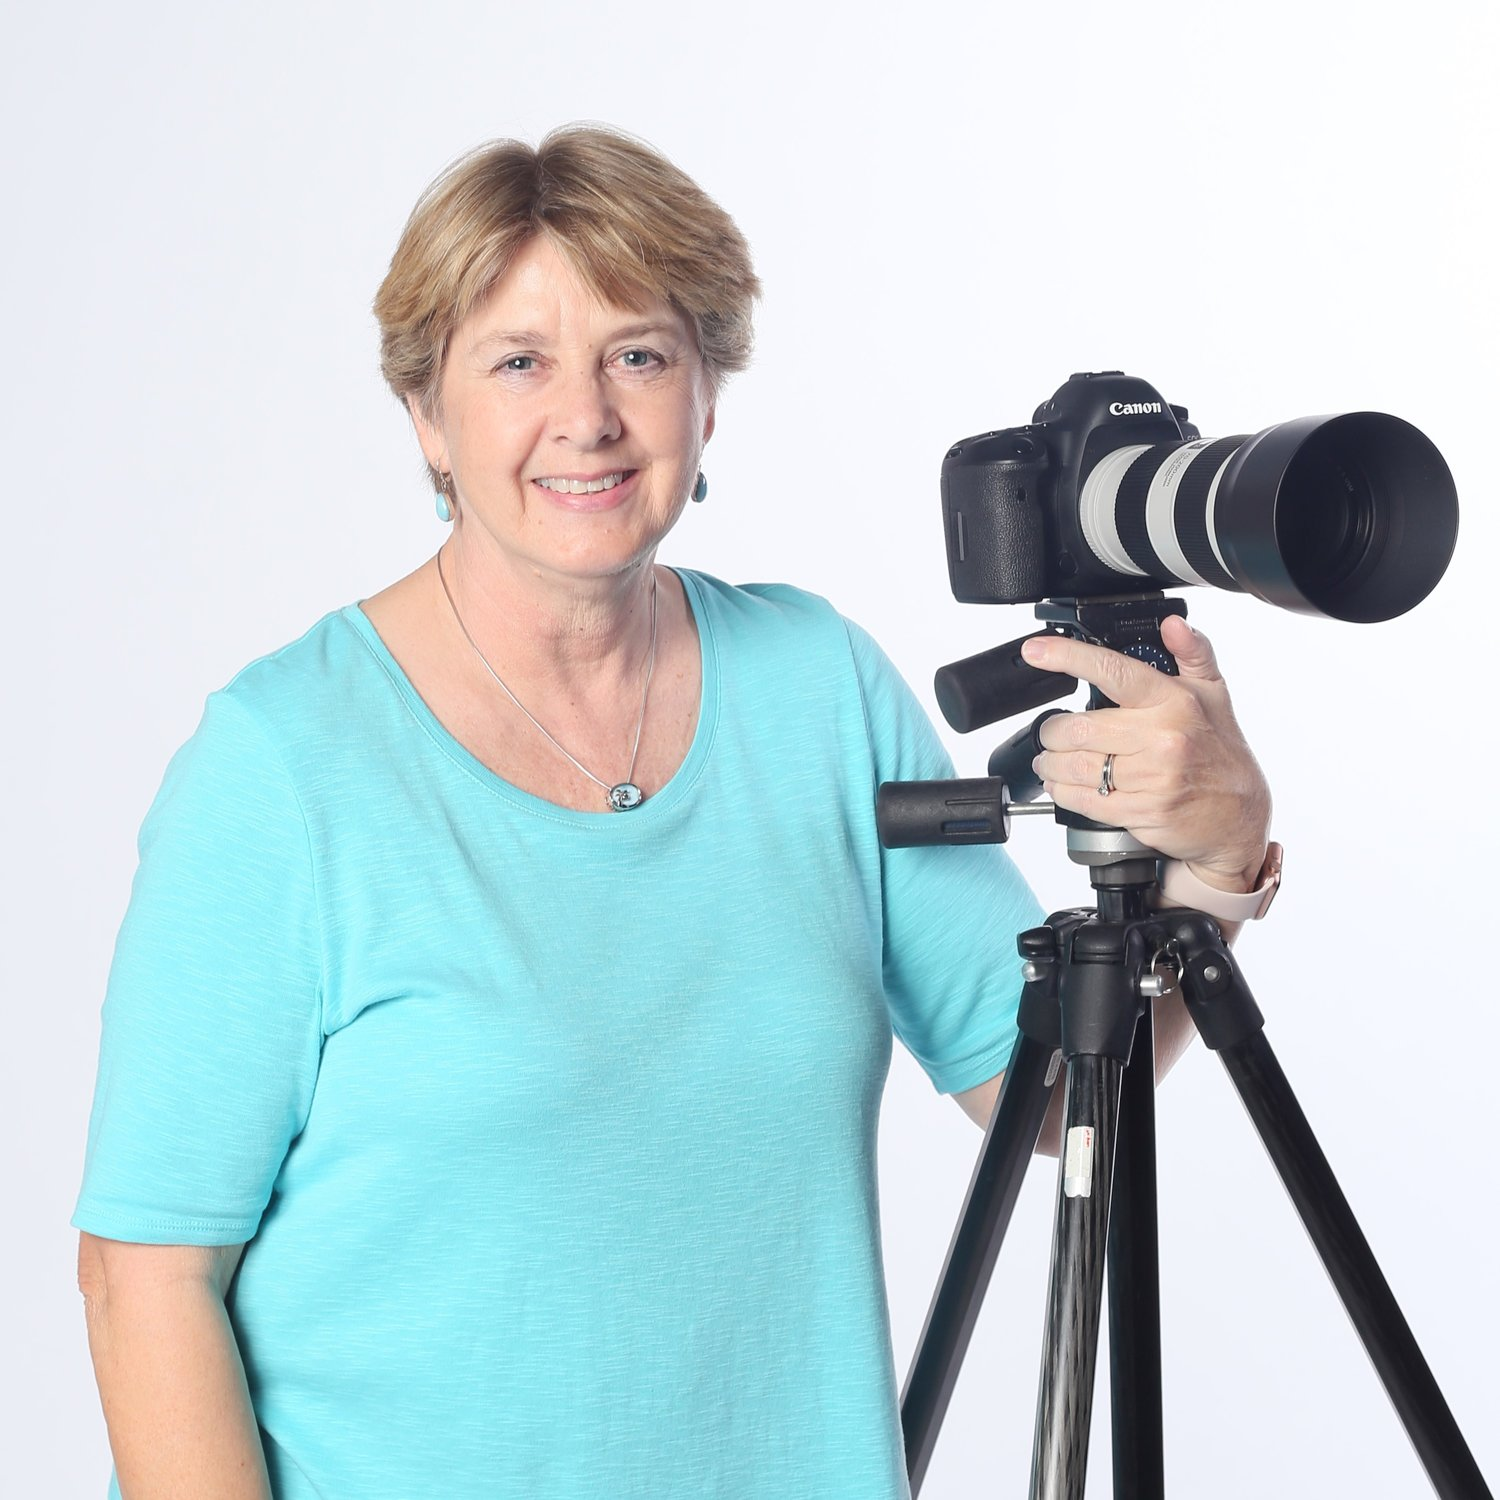 Luanne McCarley of Photos by Lulu joins prestigious group as a Certified Professional Photographer (CPP).